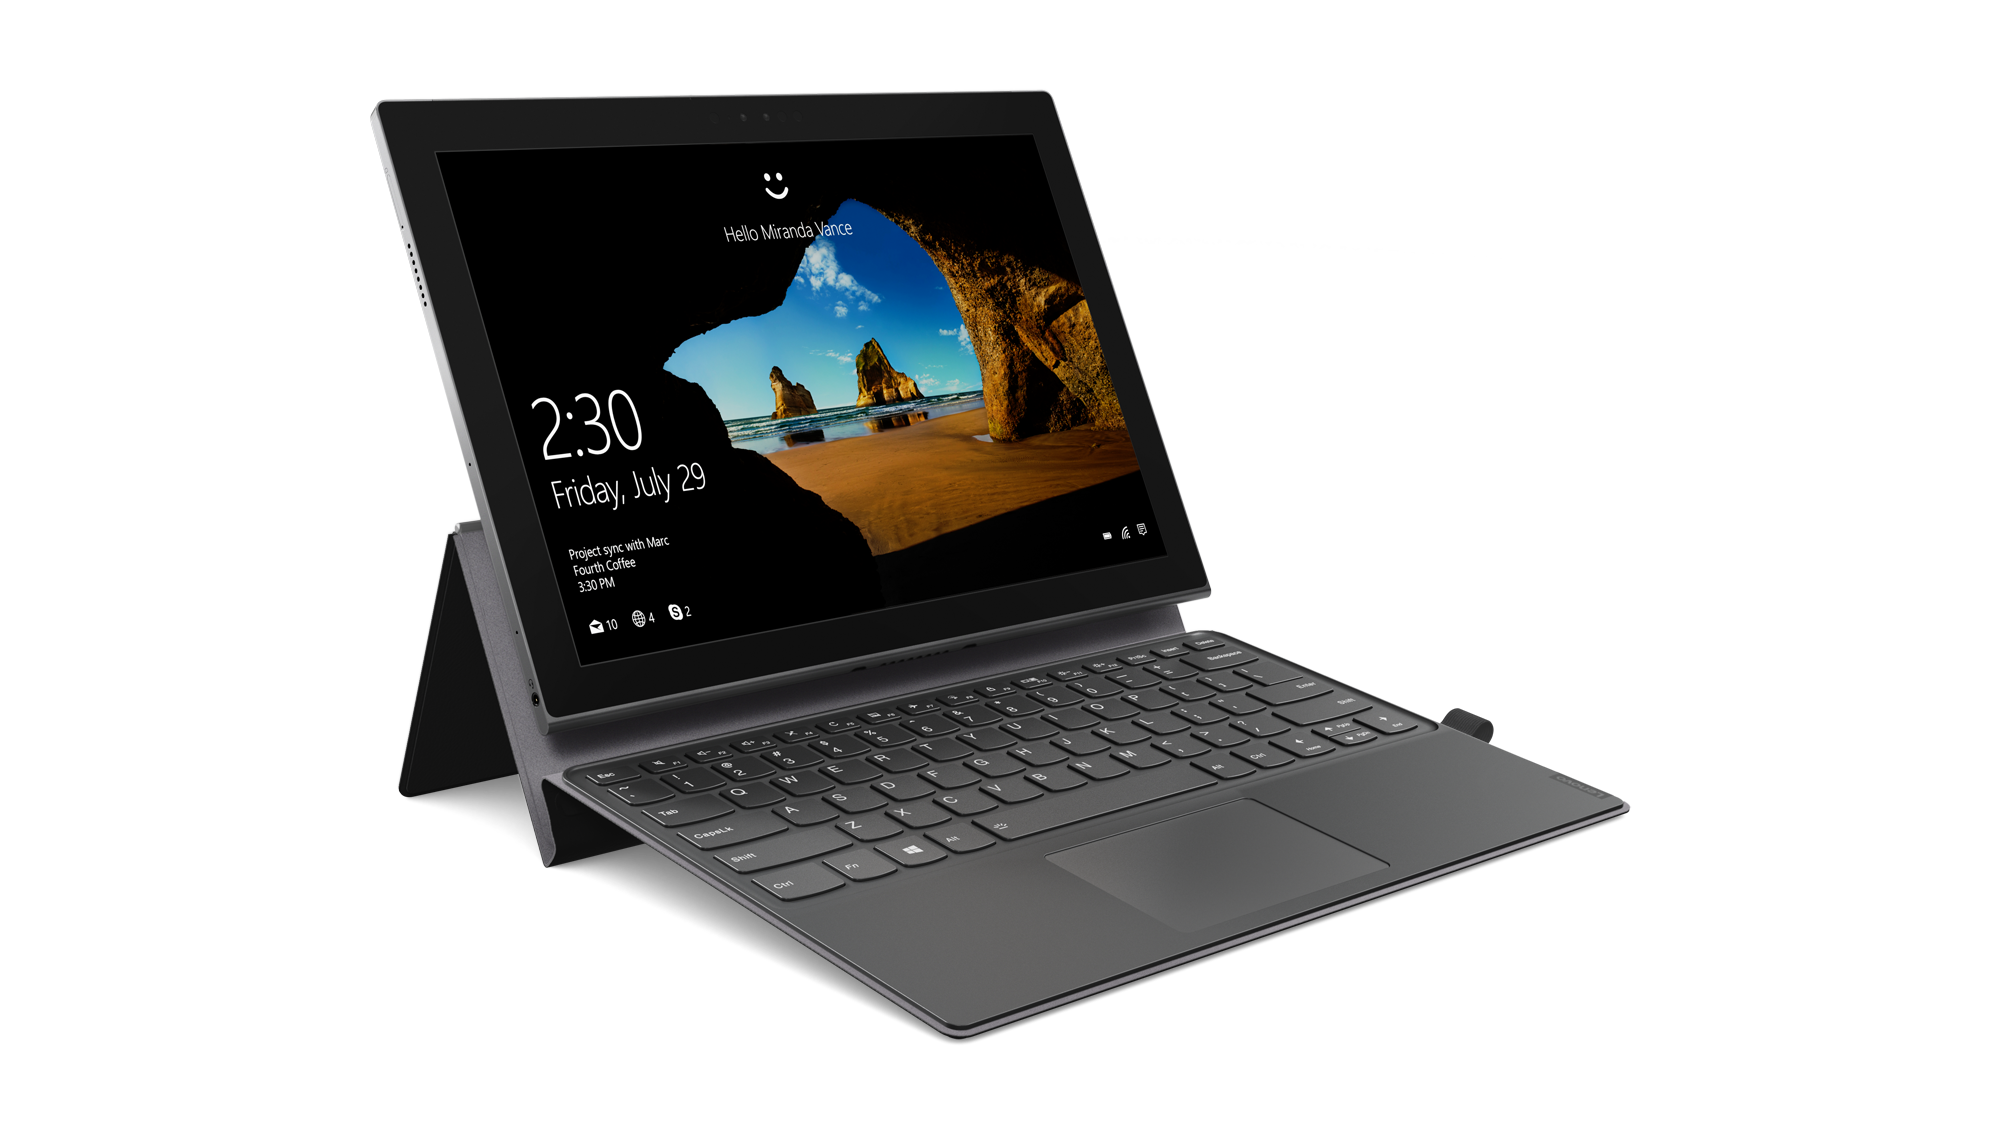 Lenovo's first Snapdragon powered PC Miix 630 unveiled today before CES 2018